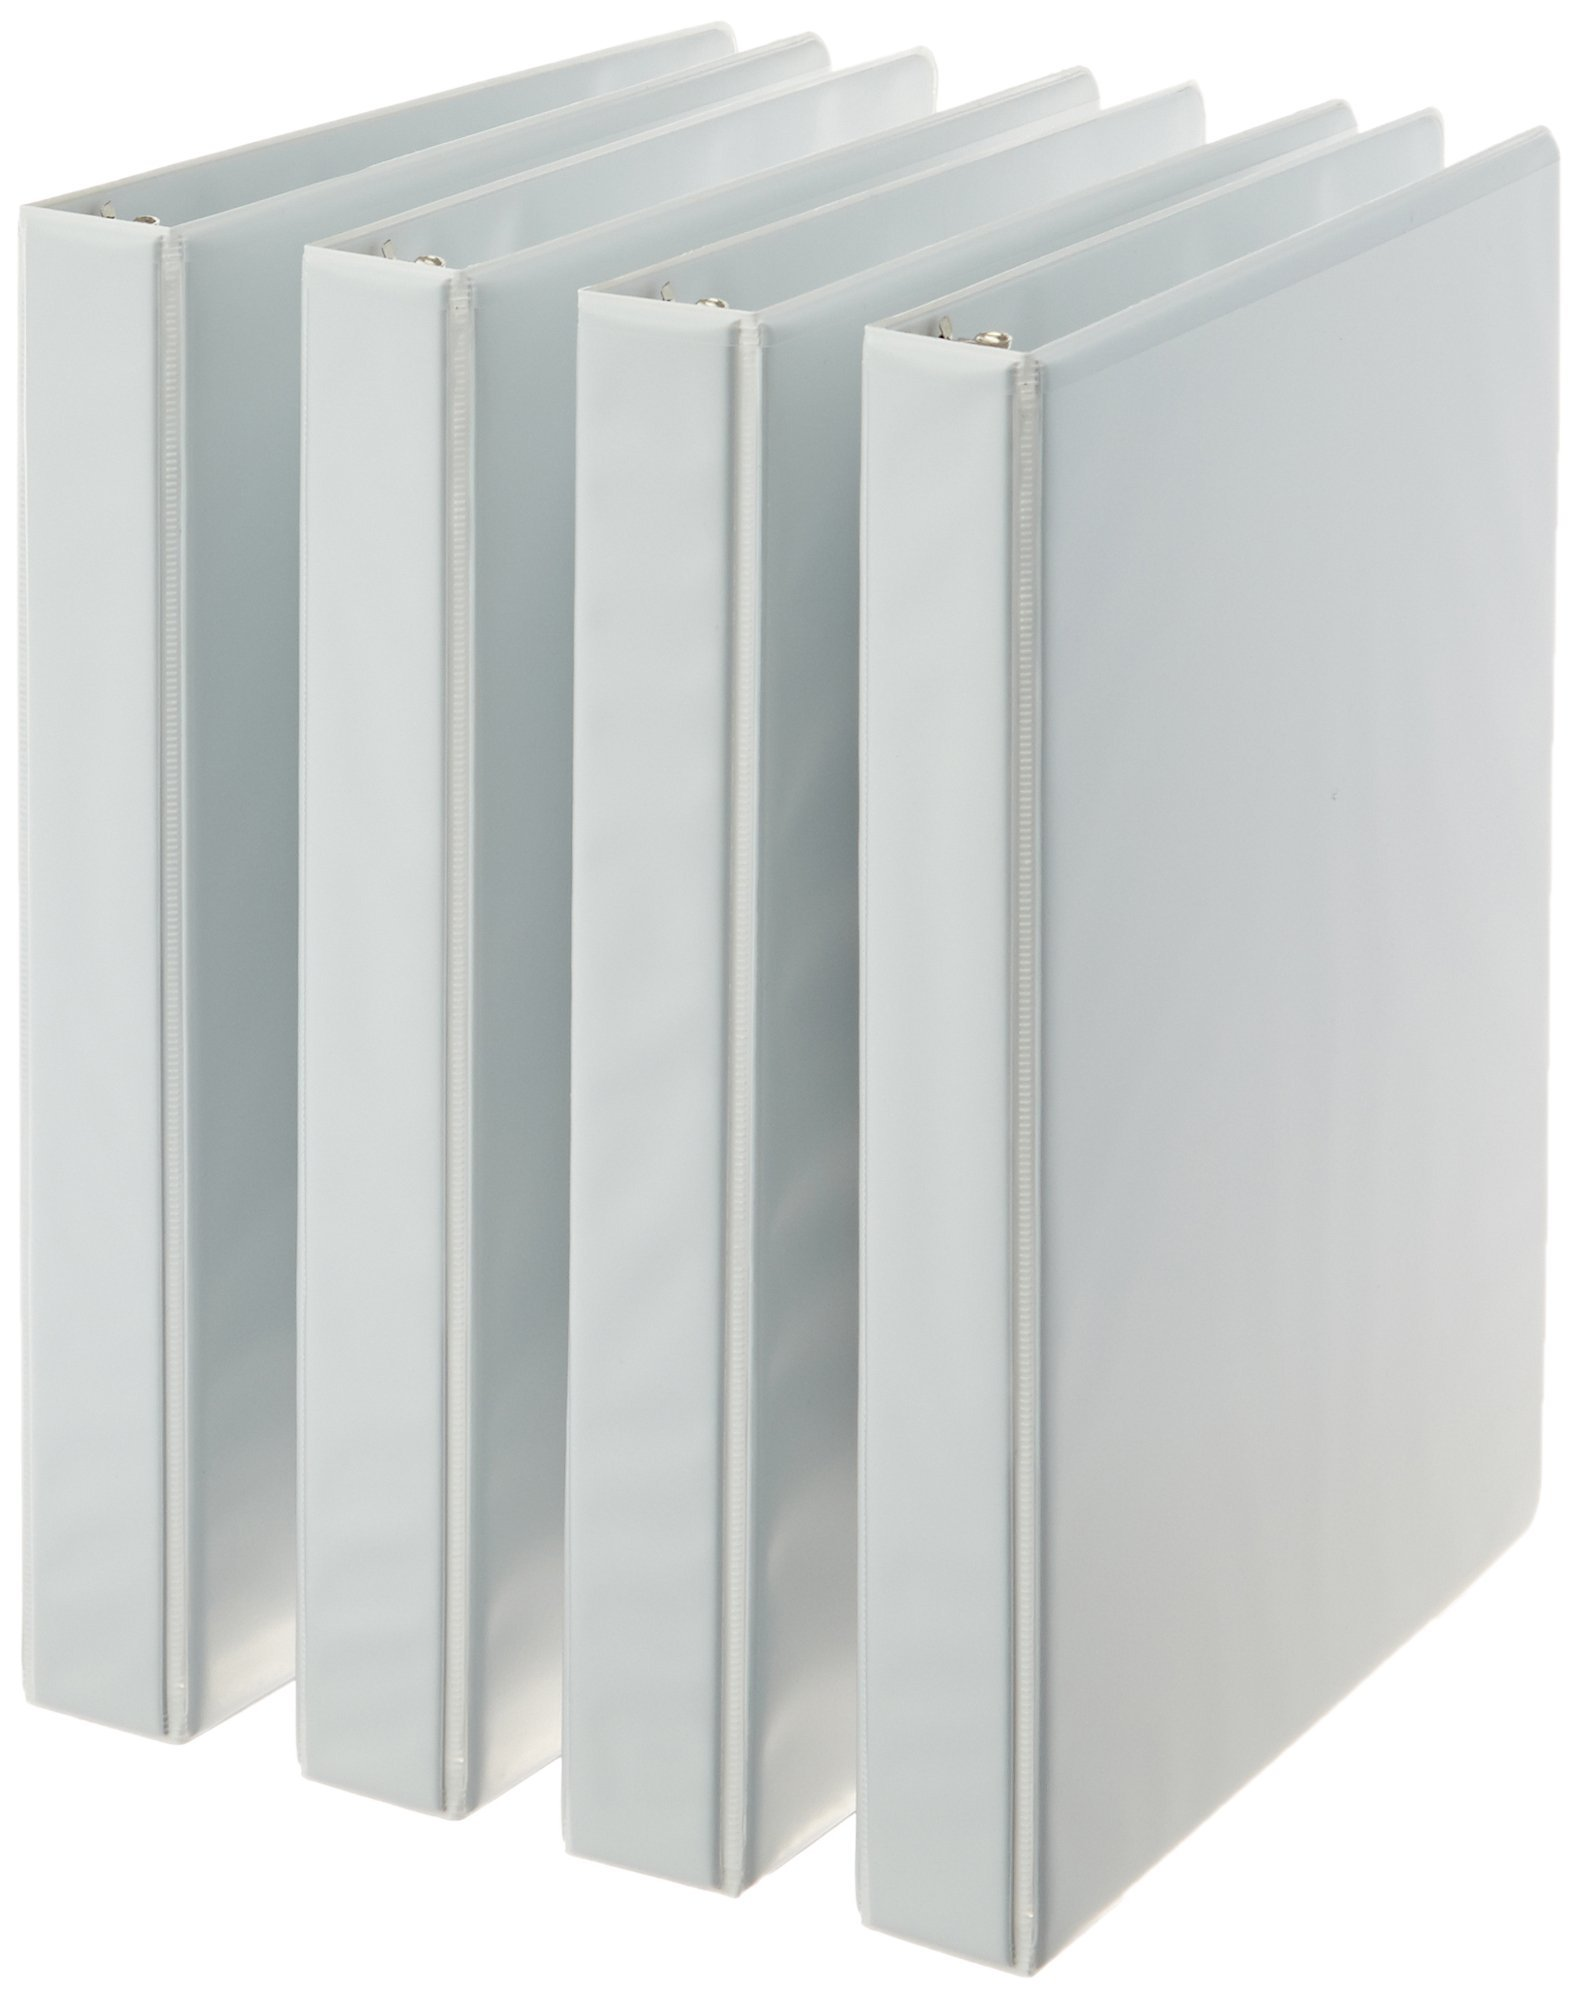 Amazonbasics 3ring Binder 1 Inch  4pack (white) White 1. Microsoft Access 2013 Database Templates. Sample Of Sample Quotation Letter Format. Writing An Introduction To An Essay Template. Sample Memorandum Of Law Template. Da 2062 Example. Stop Smoking Persuasive Essay Template. Types Of Skills To List On A Resume Template. Program Booklet Template